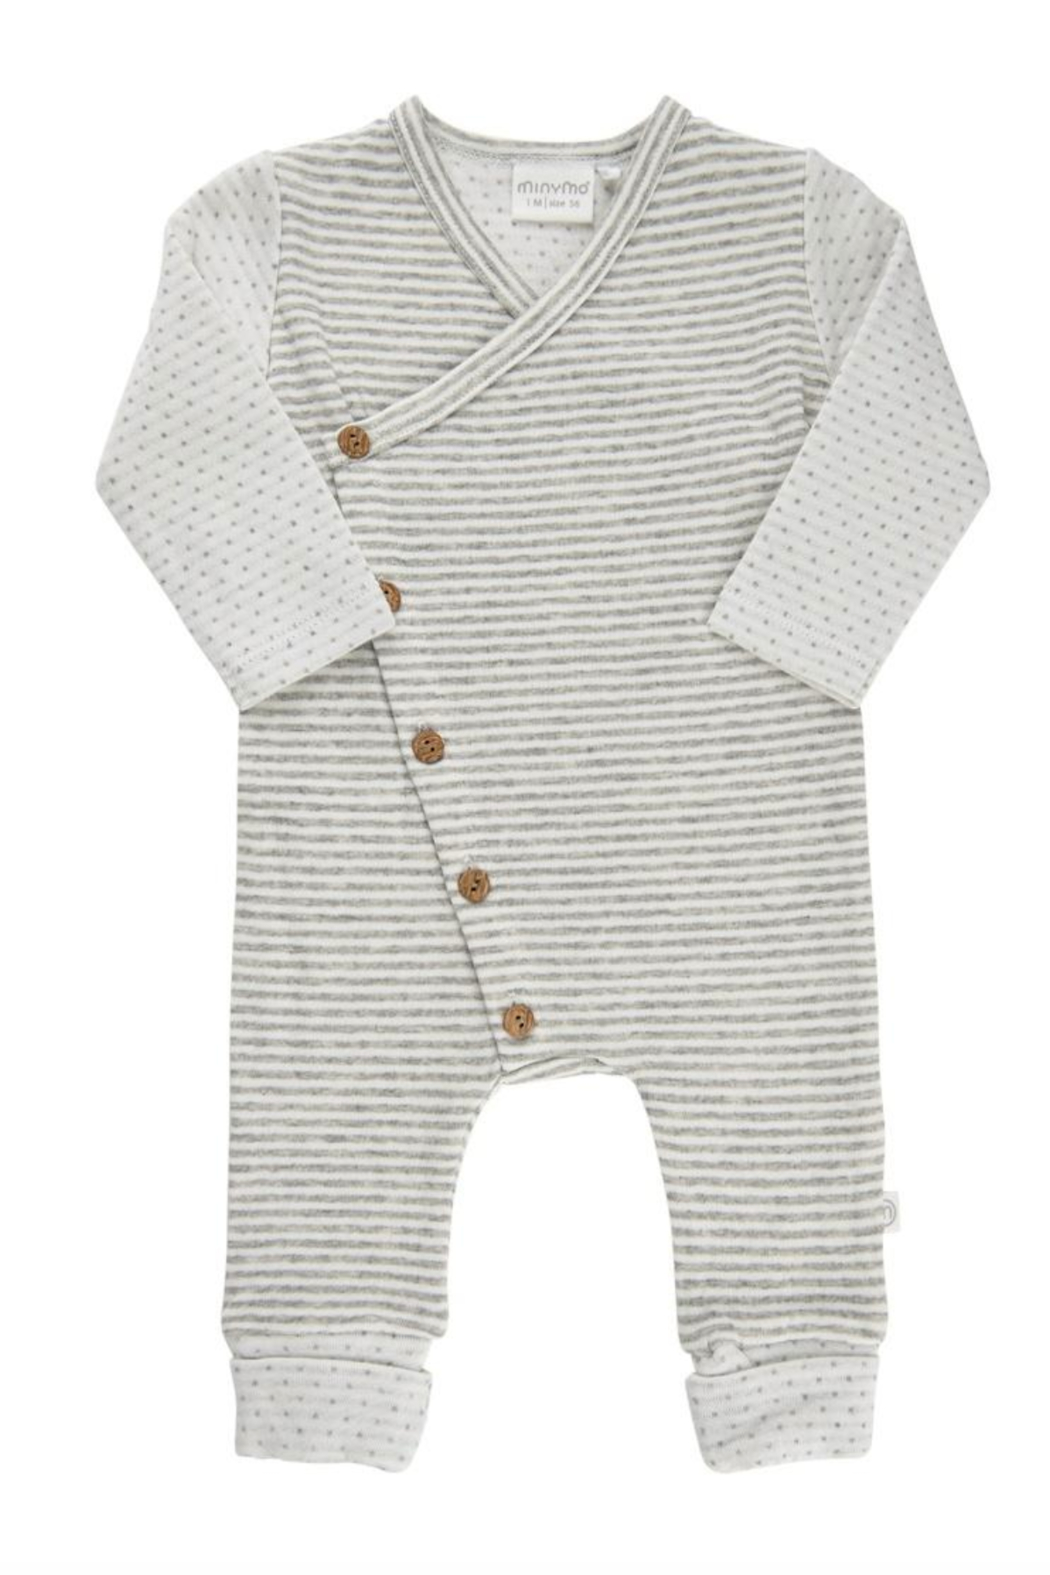 Minymo Striped Romper - Main Image